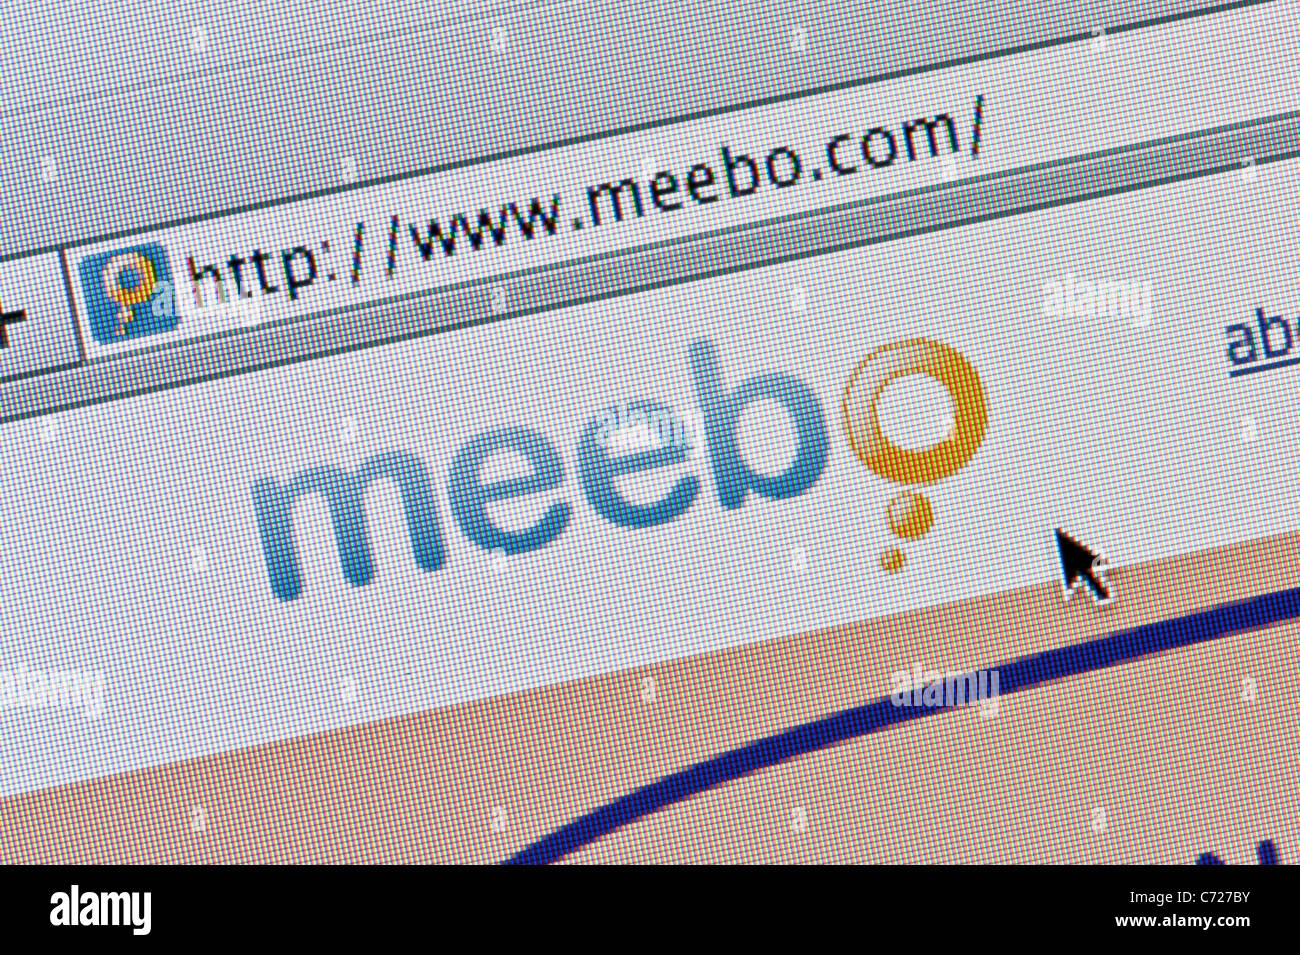 meebo dating site